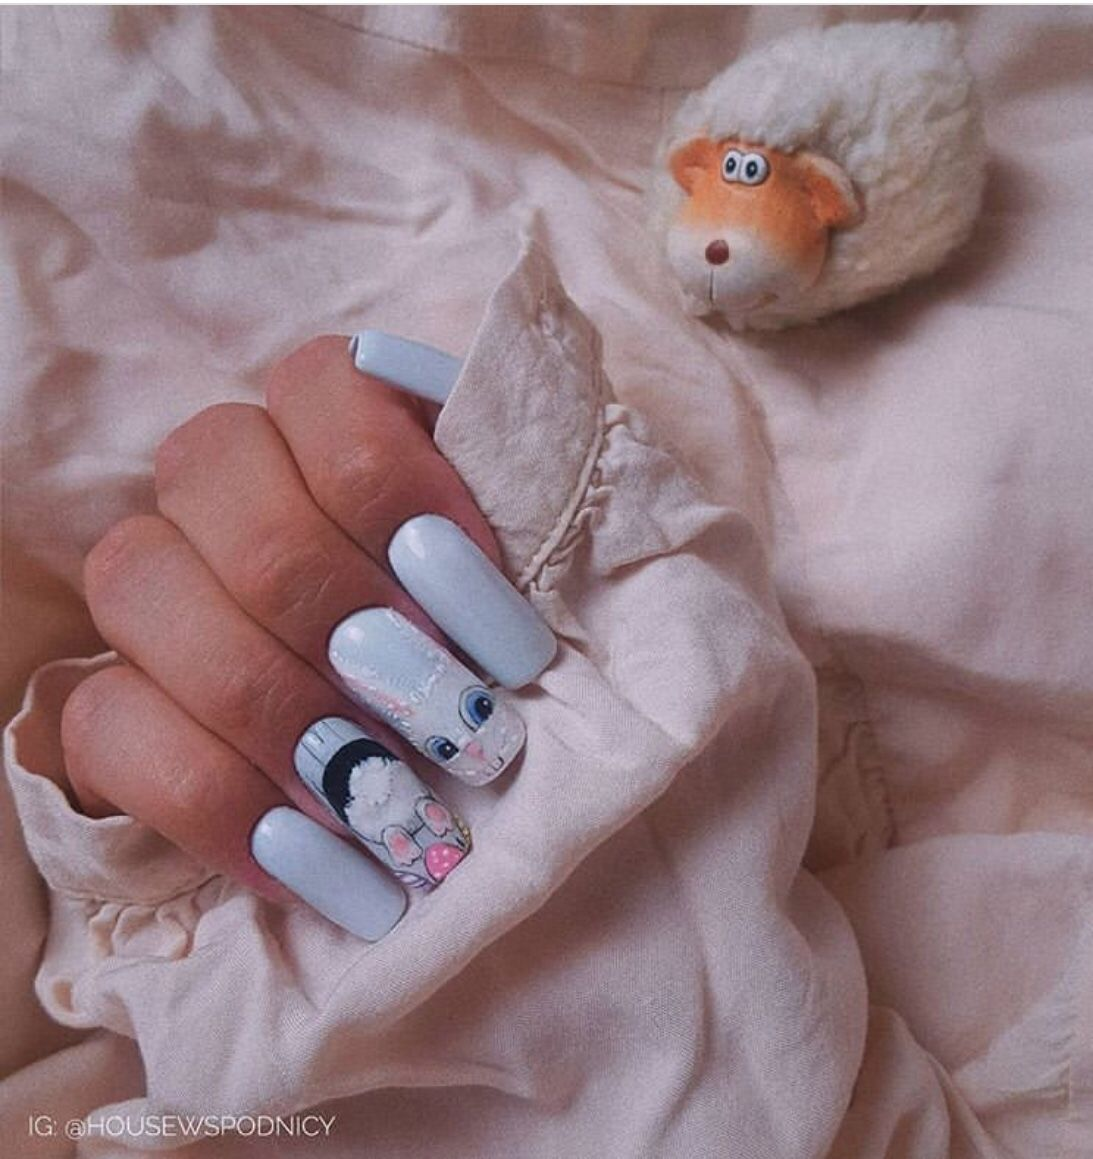 50+ Cute Bunny Nail Designs For Easter - The Glossychic